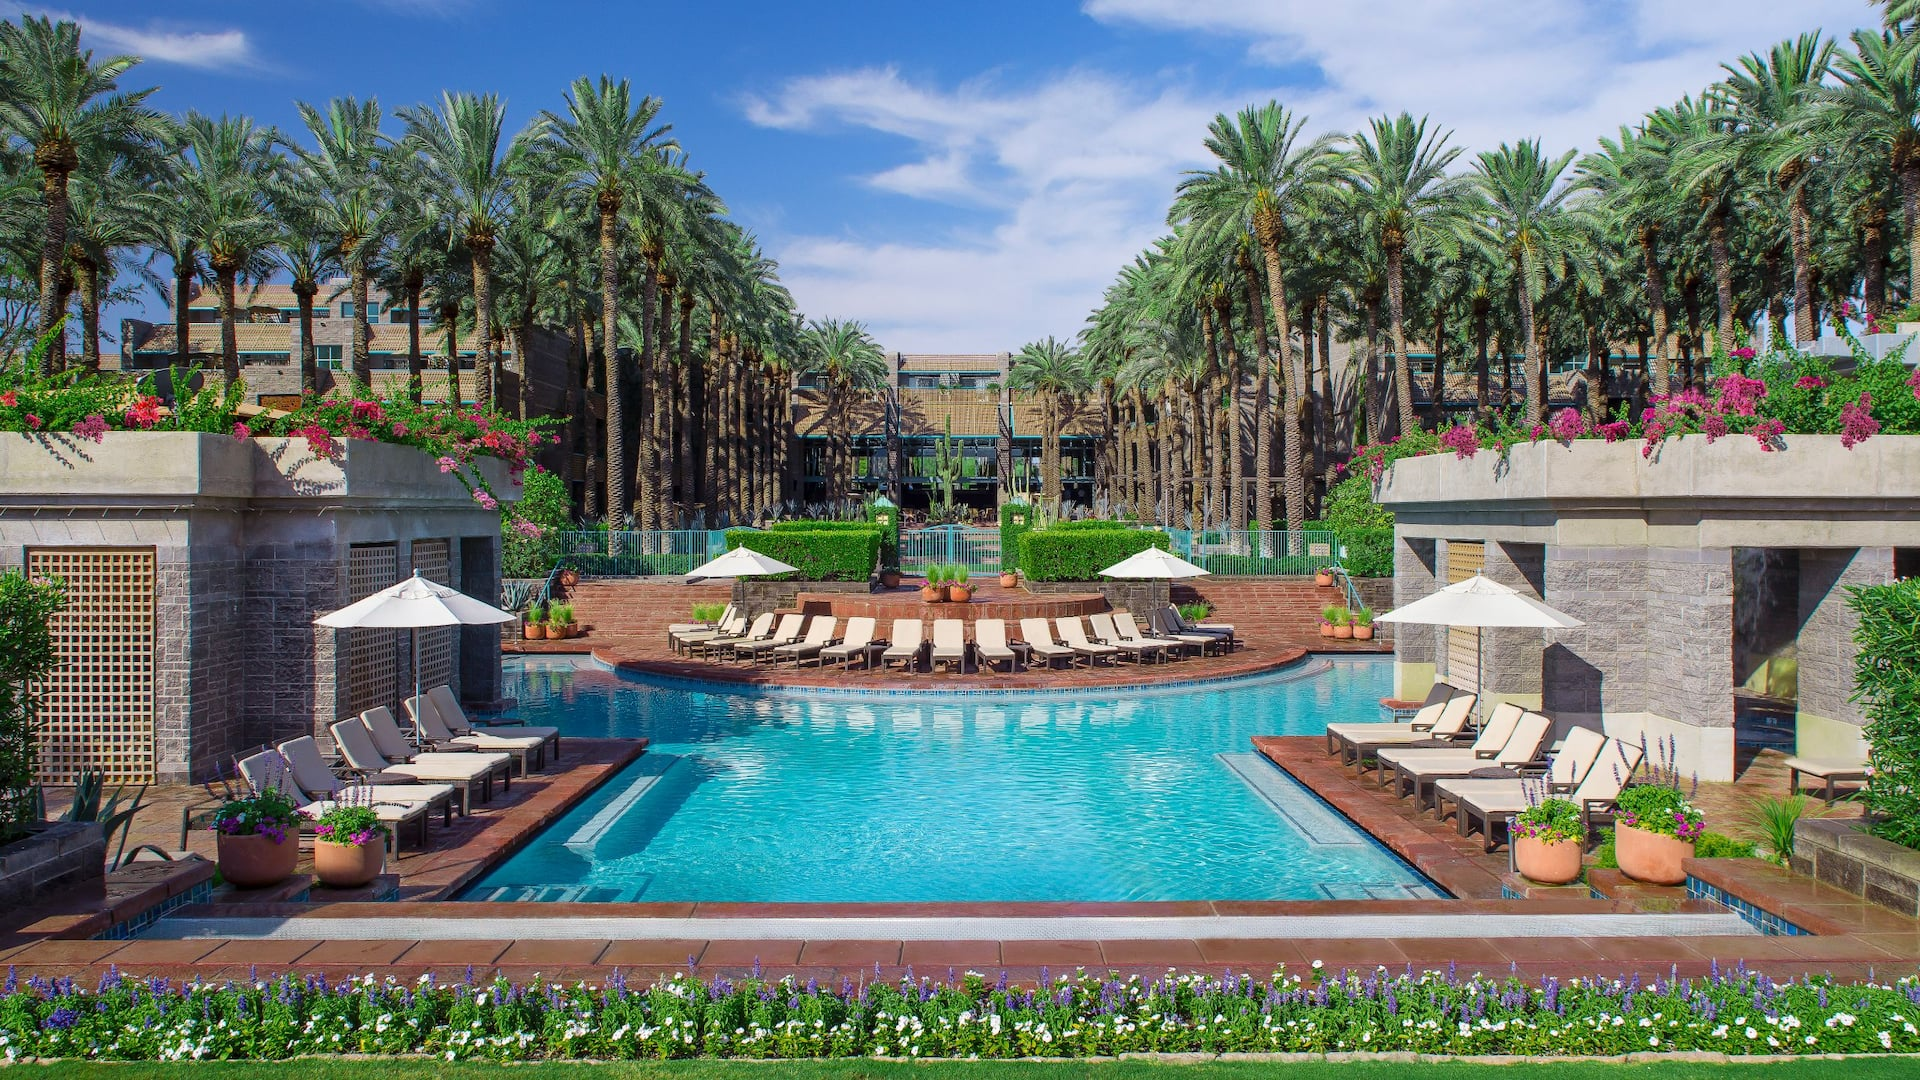 Hotels in Scottsdale Area with pools and family fun – Hyatt Regency Scottsdale Resort & Spa at Gainey Ranch